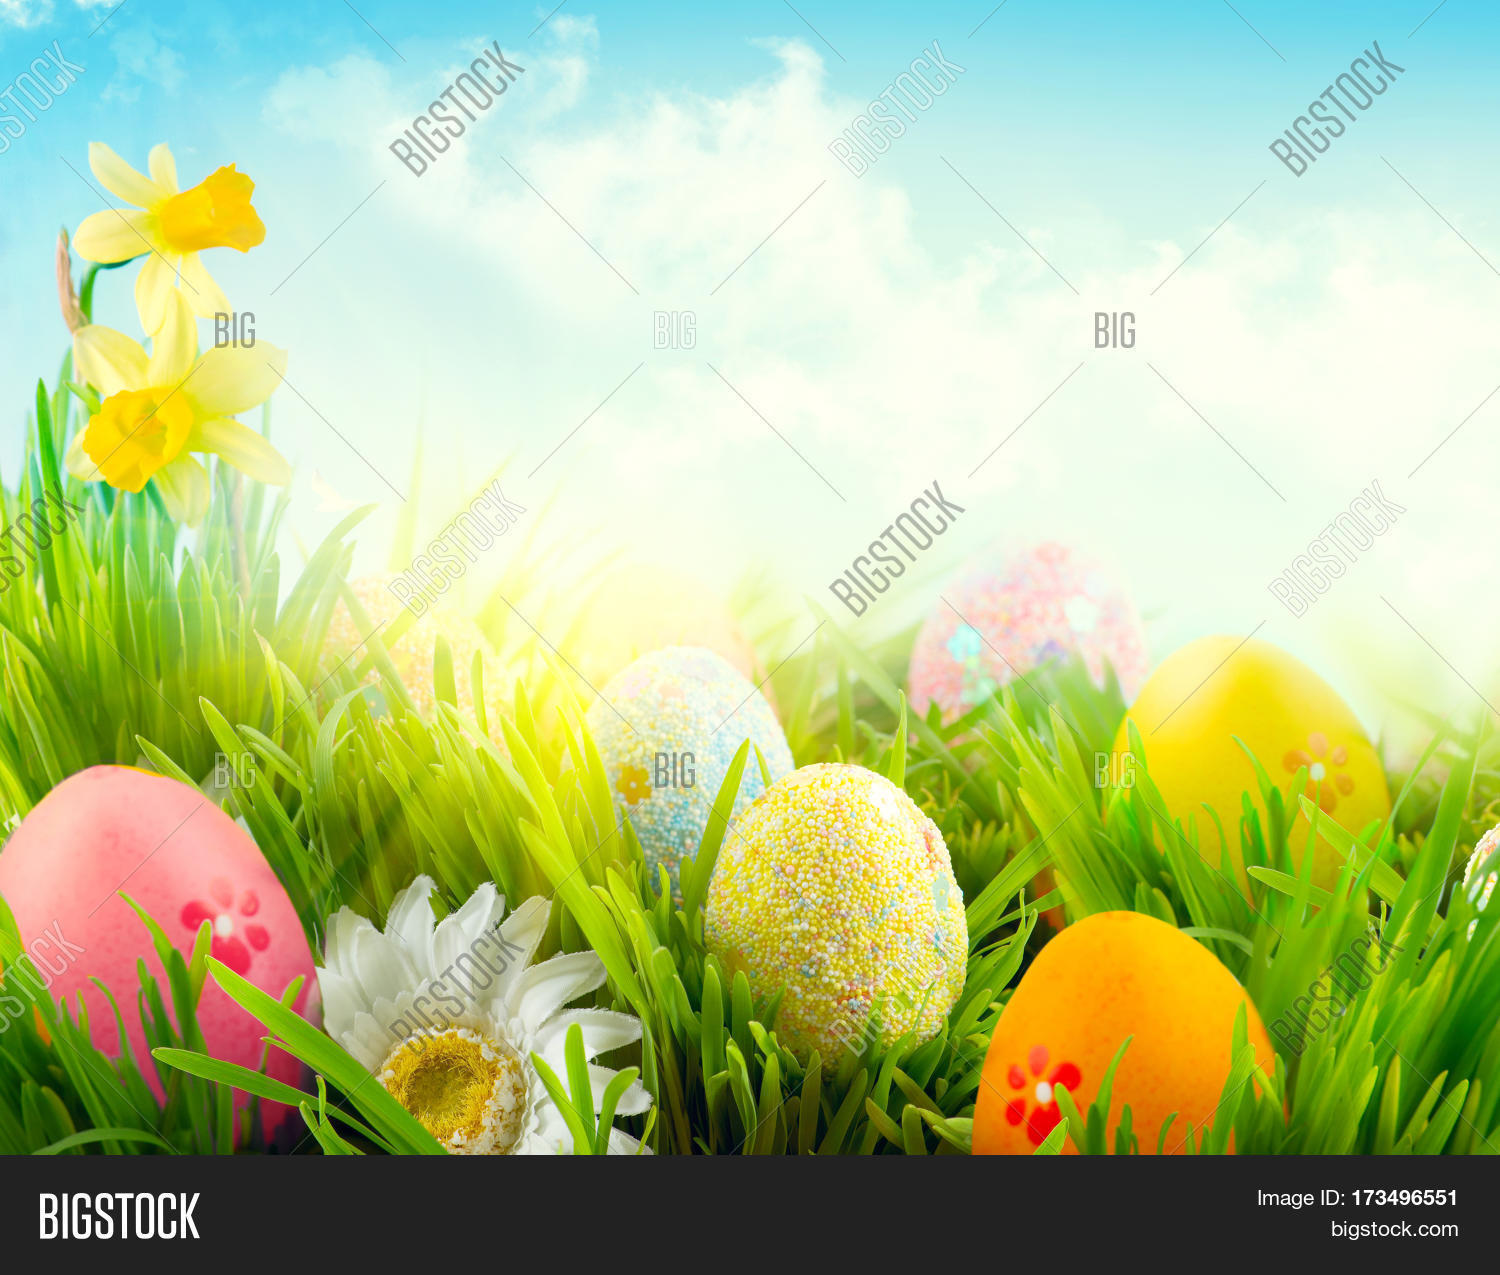 Easter Nature Spring Image Photo Free Trial Bigstock